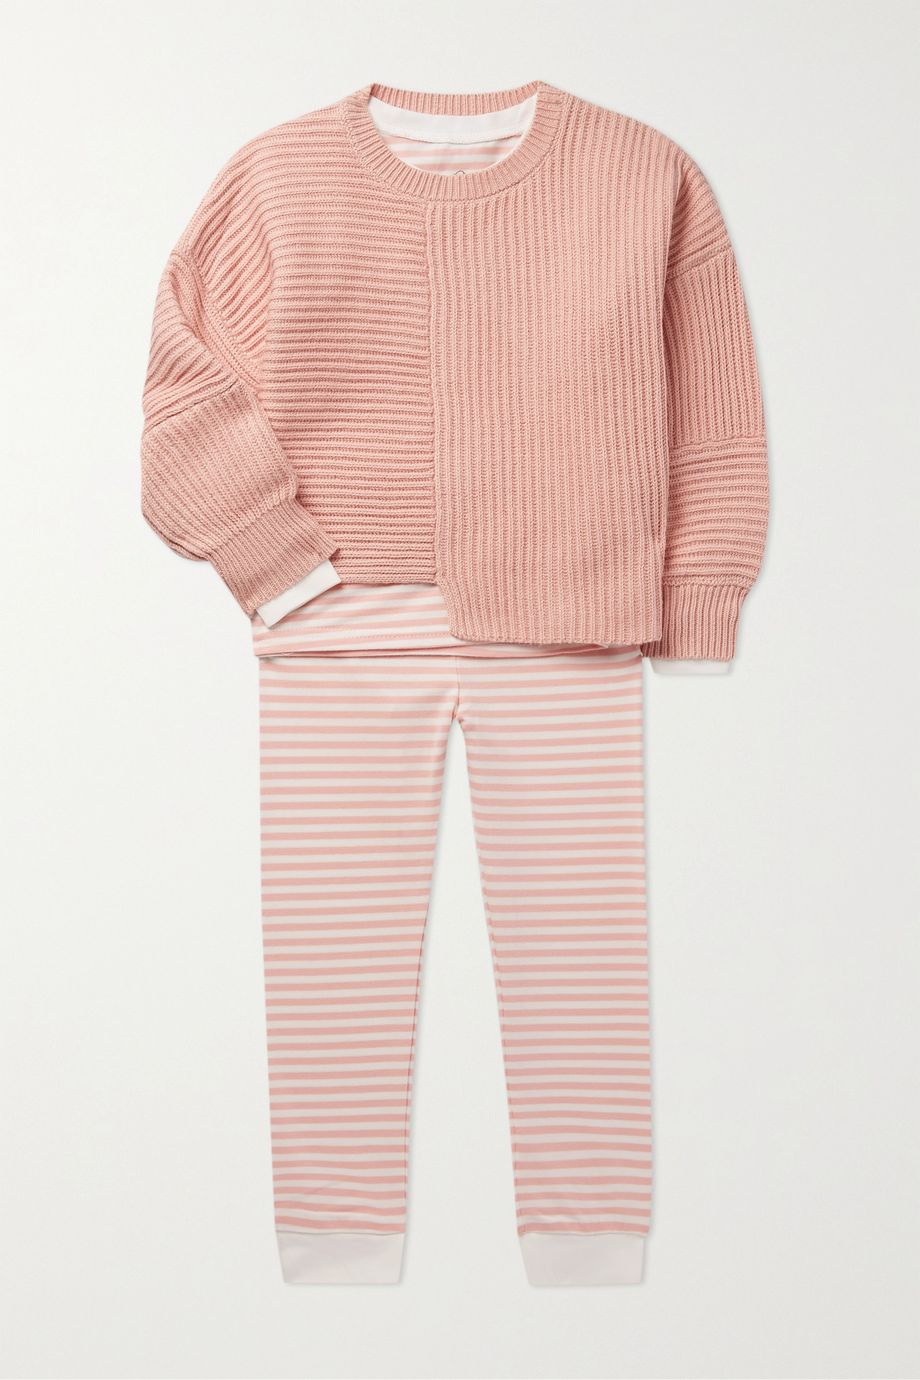 Morgan Lane Kids Ages 1 - 8 Lulu striped cotton-blend jersey pajama set